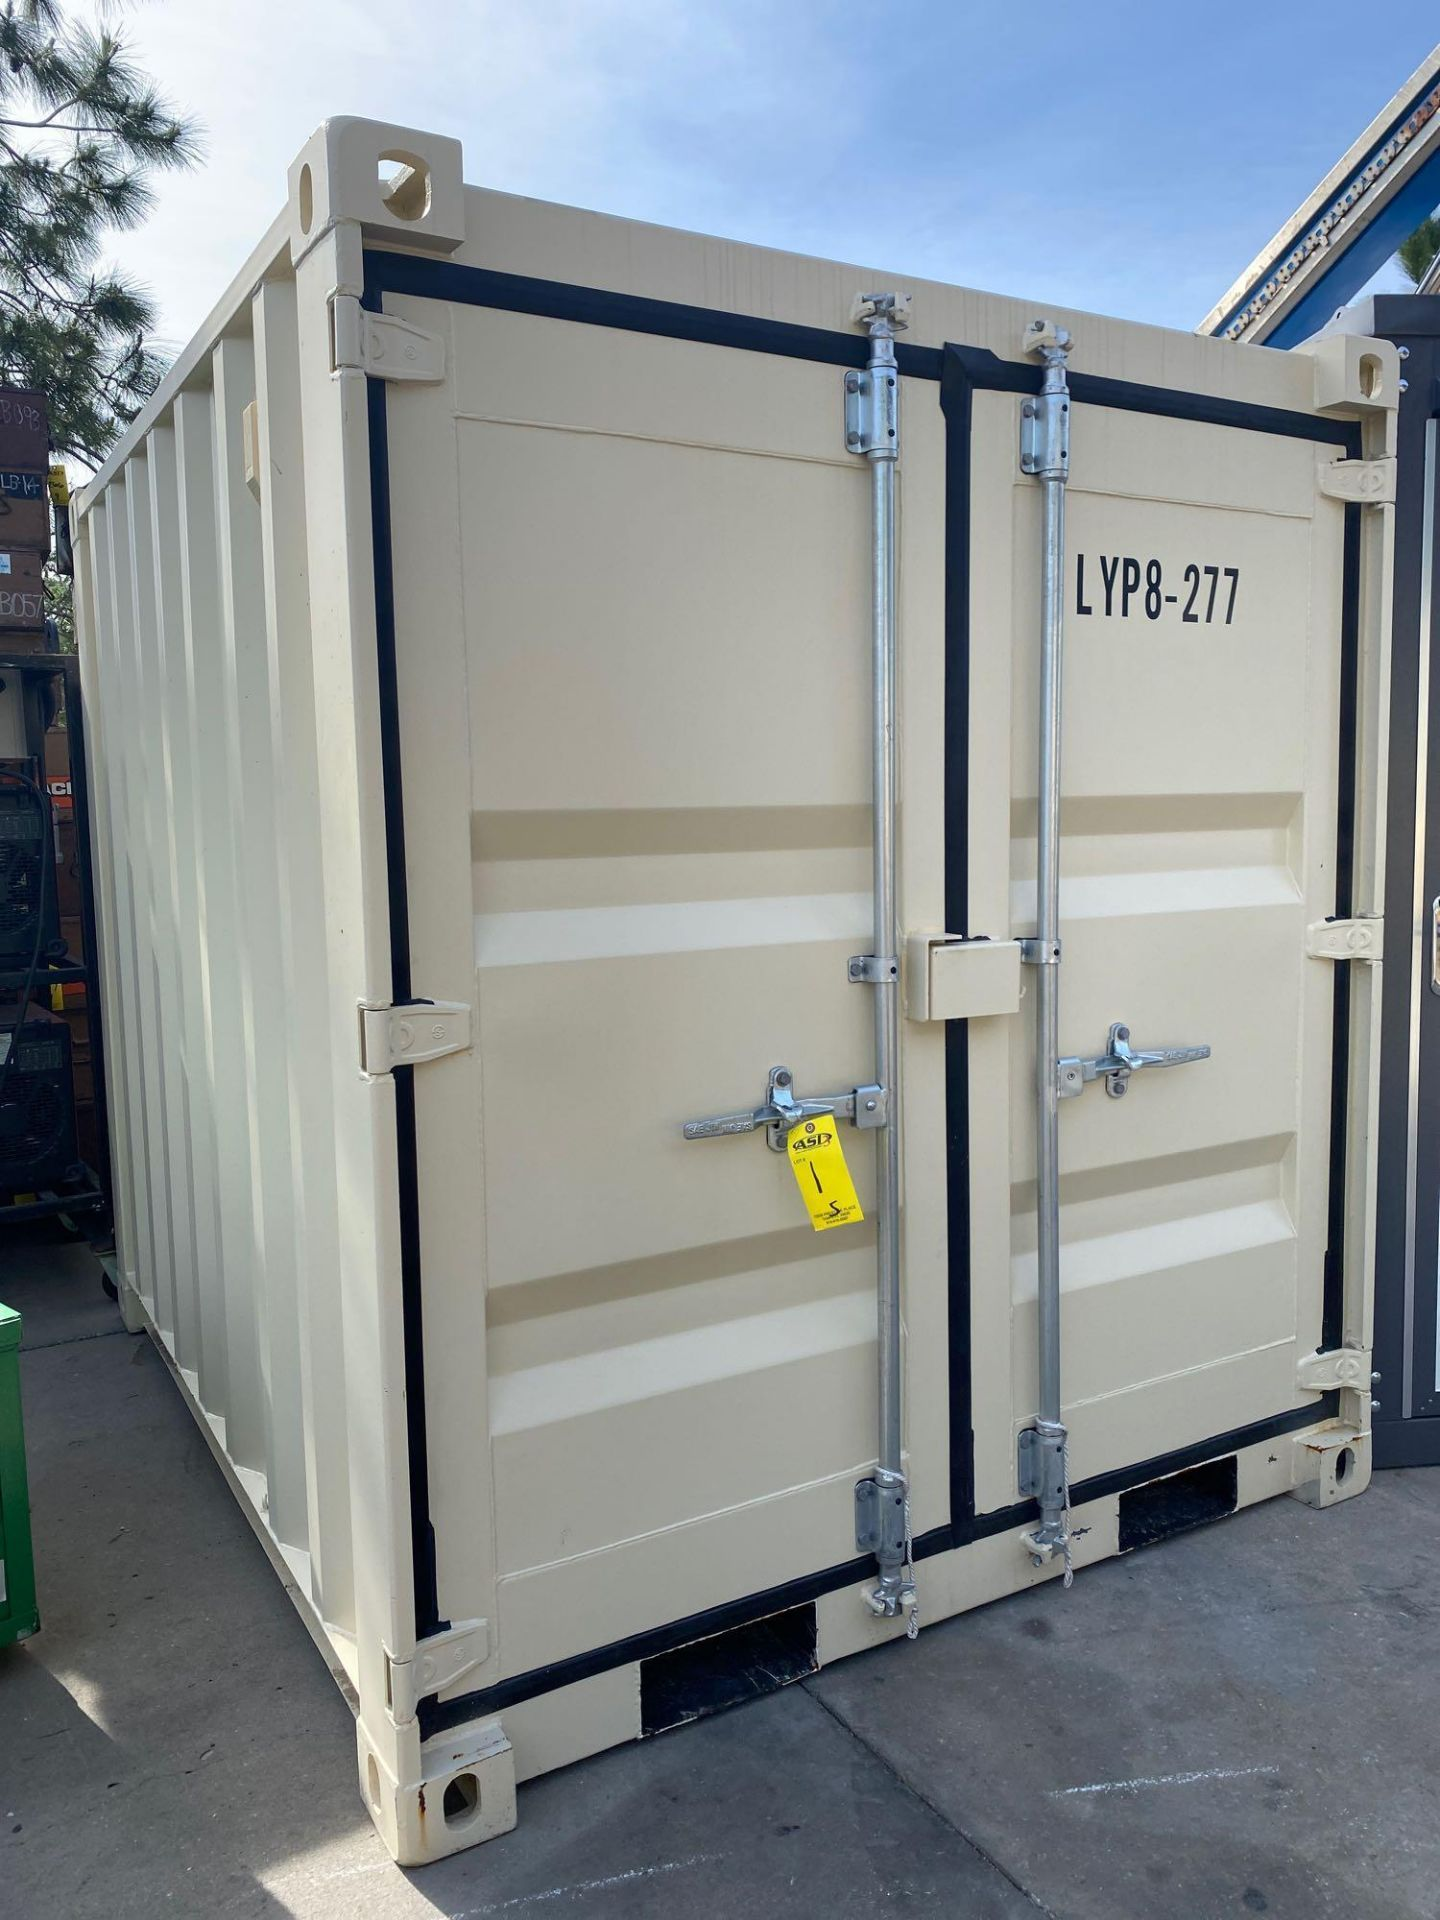 "Lot 1 - UNUSED PORTABLE OFFICE/STORAGE CONTAINER WITH WINDOW AND SIDE DOOR, APPROX 77""w 84""t 98"" deep"